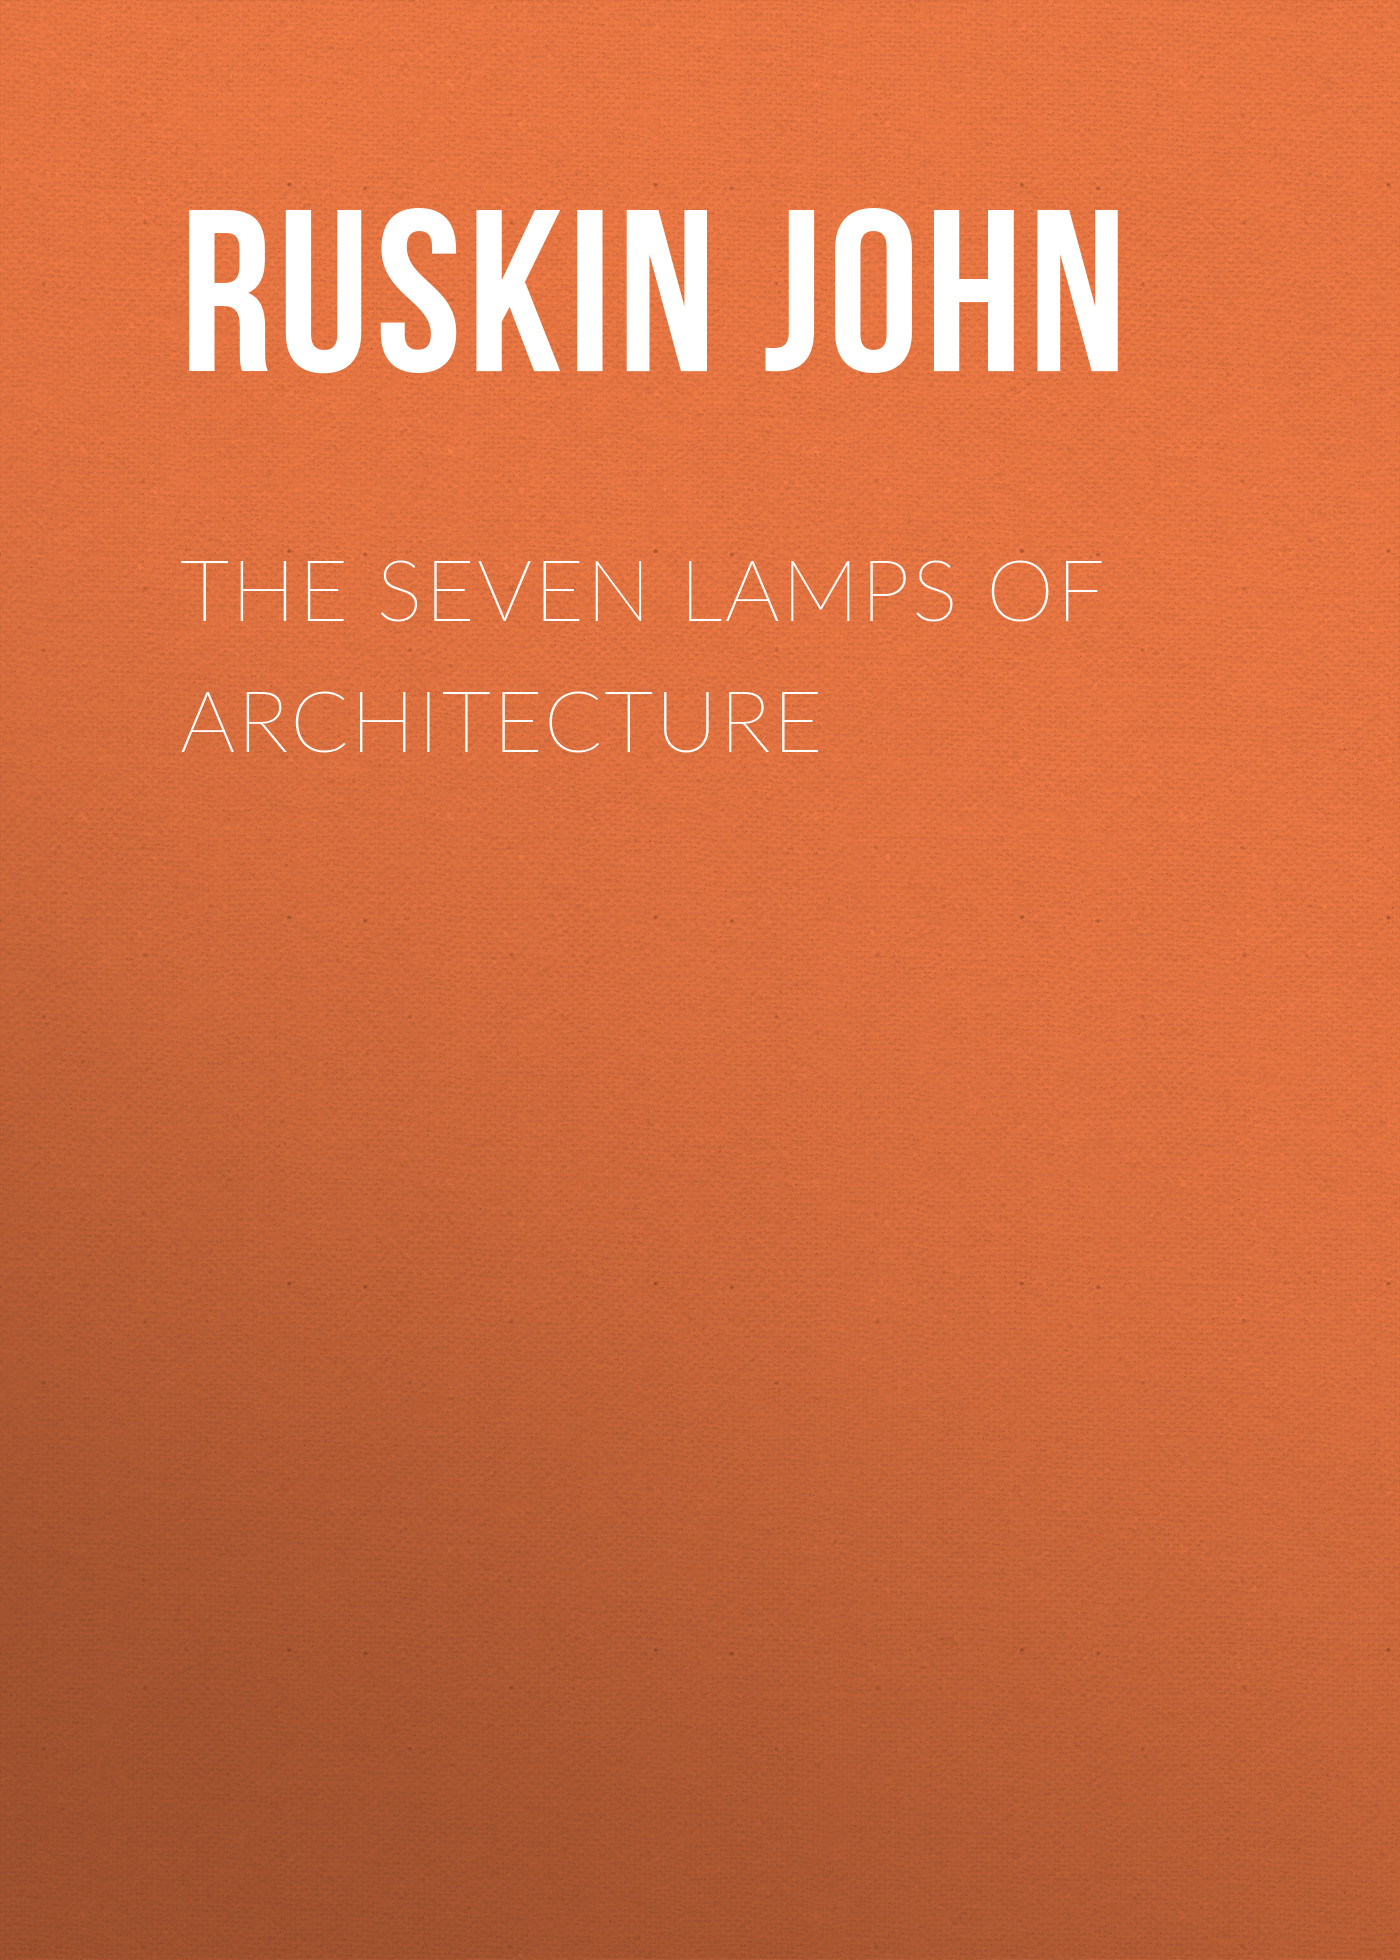 Ruskin John The Seven Lamps of Architecture